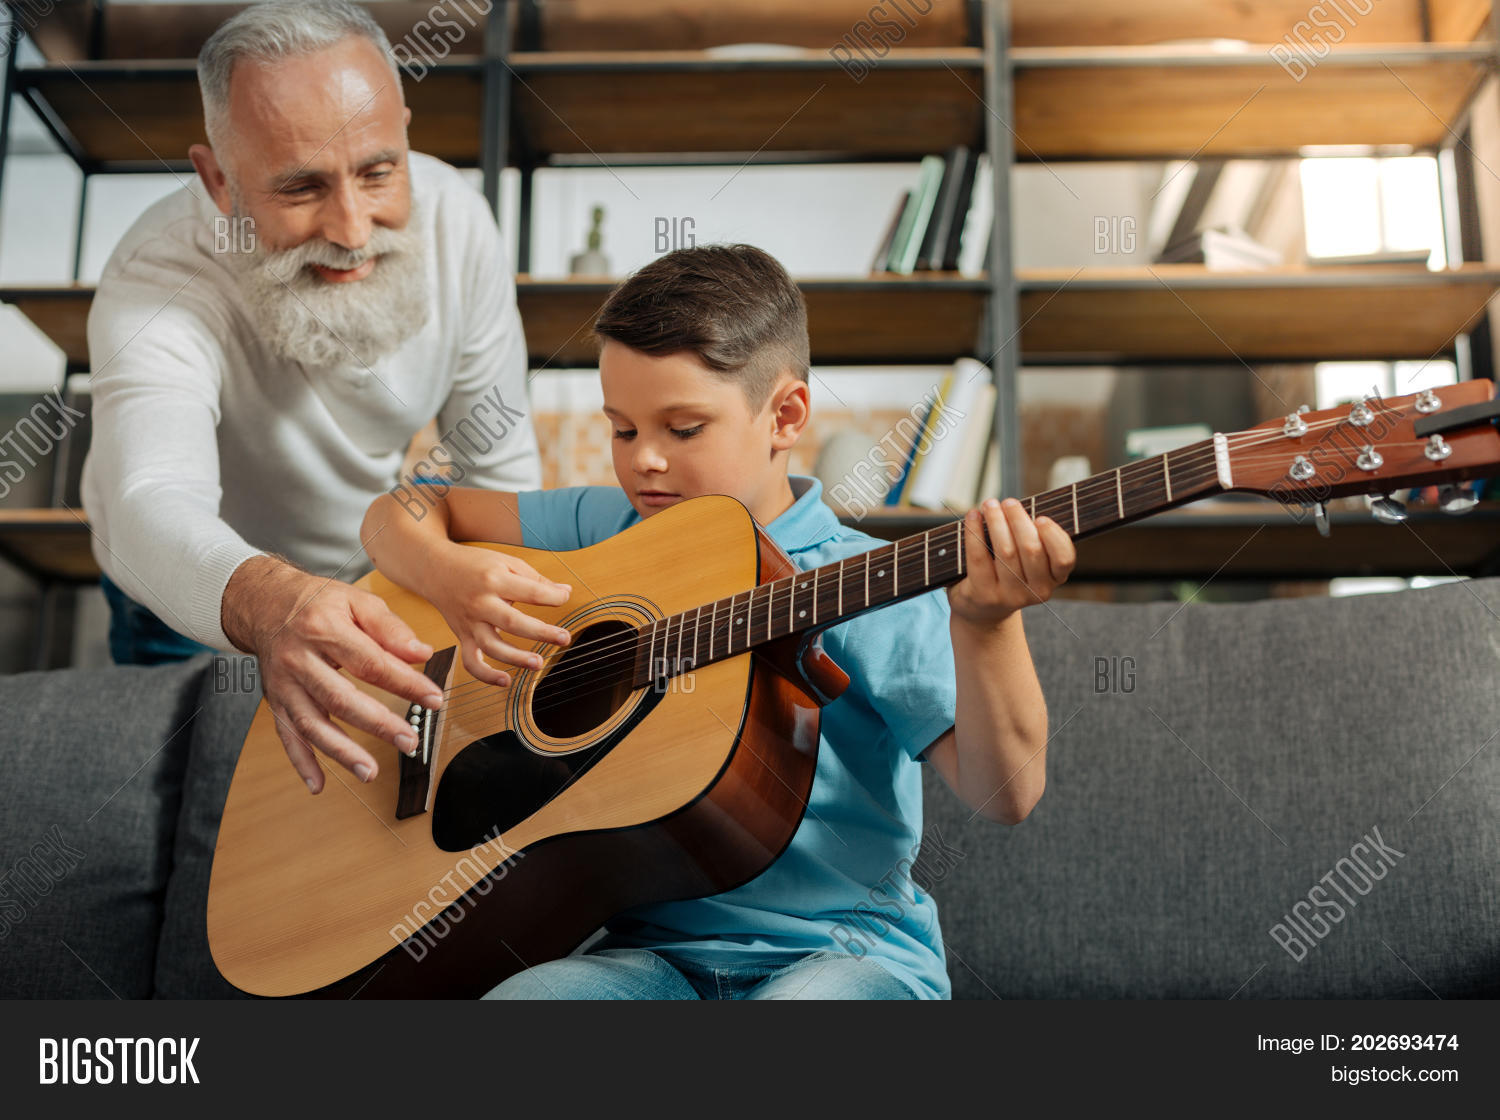 Practice Makes Perfect Image Photo Free Trial Bigstock